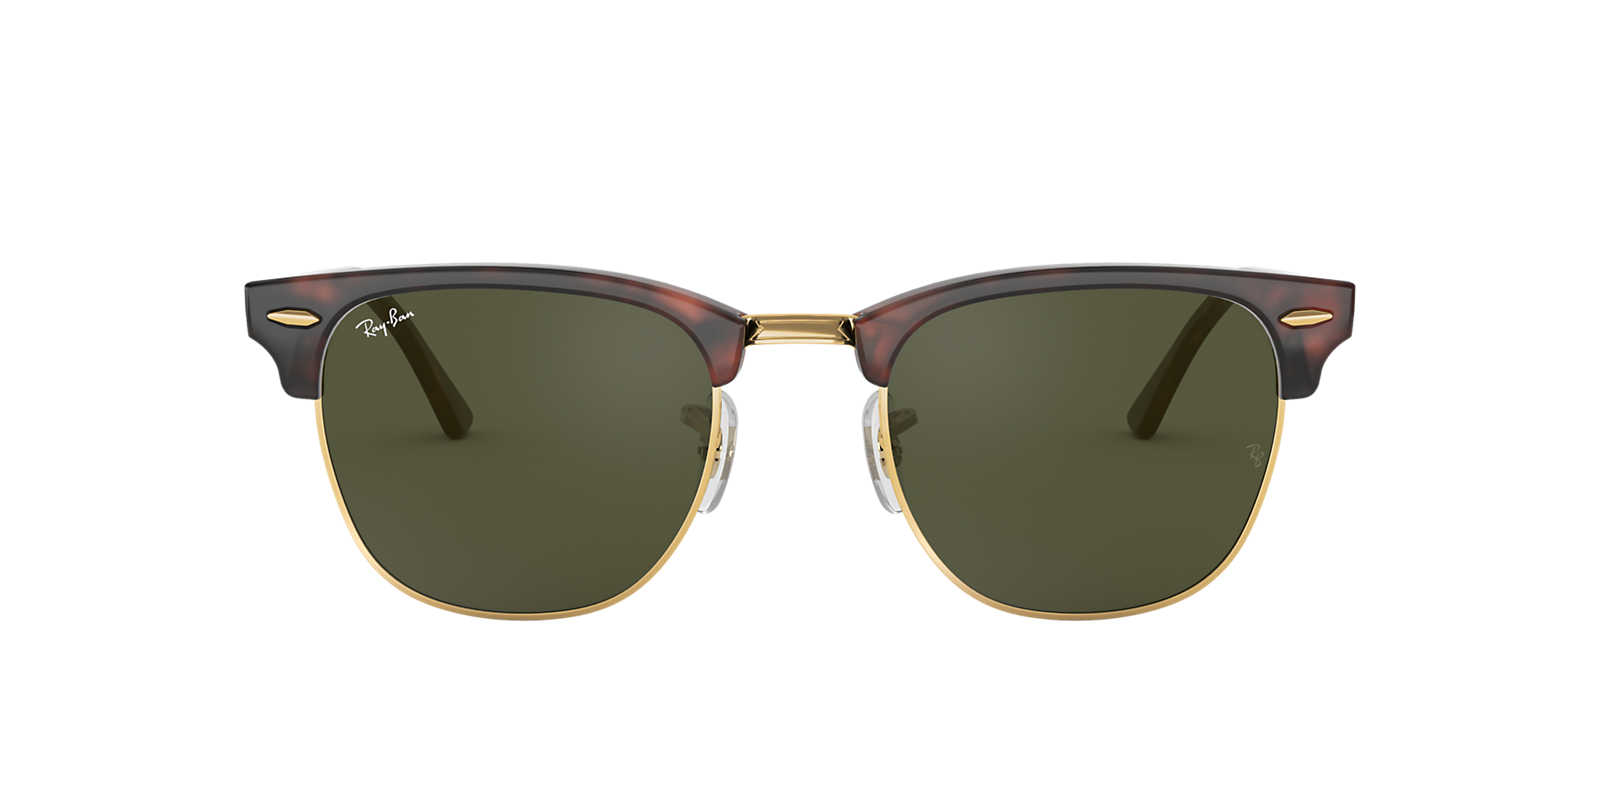 ray ban sunglasses outlet in delhi  rb3016 49 clubmaster rb3016 49 clubmaster · ray ban